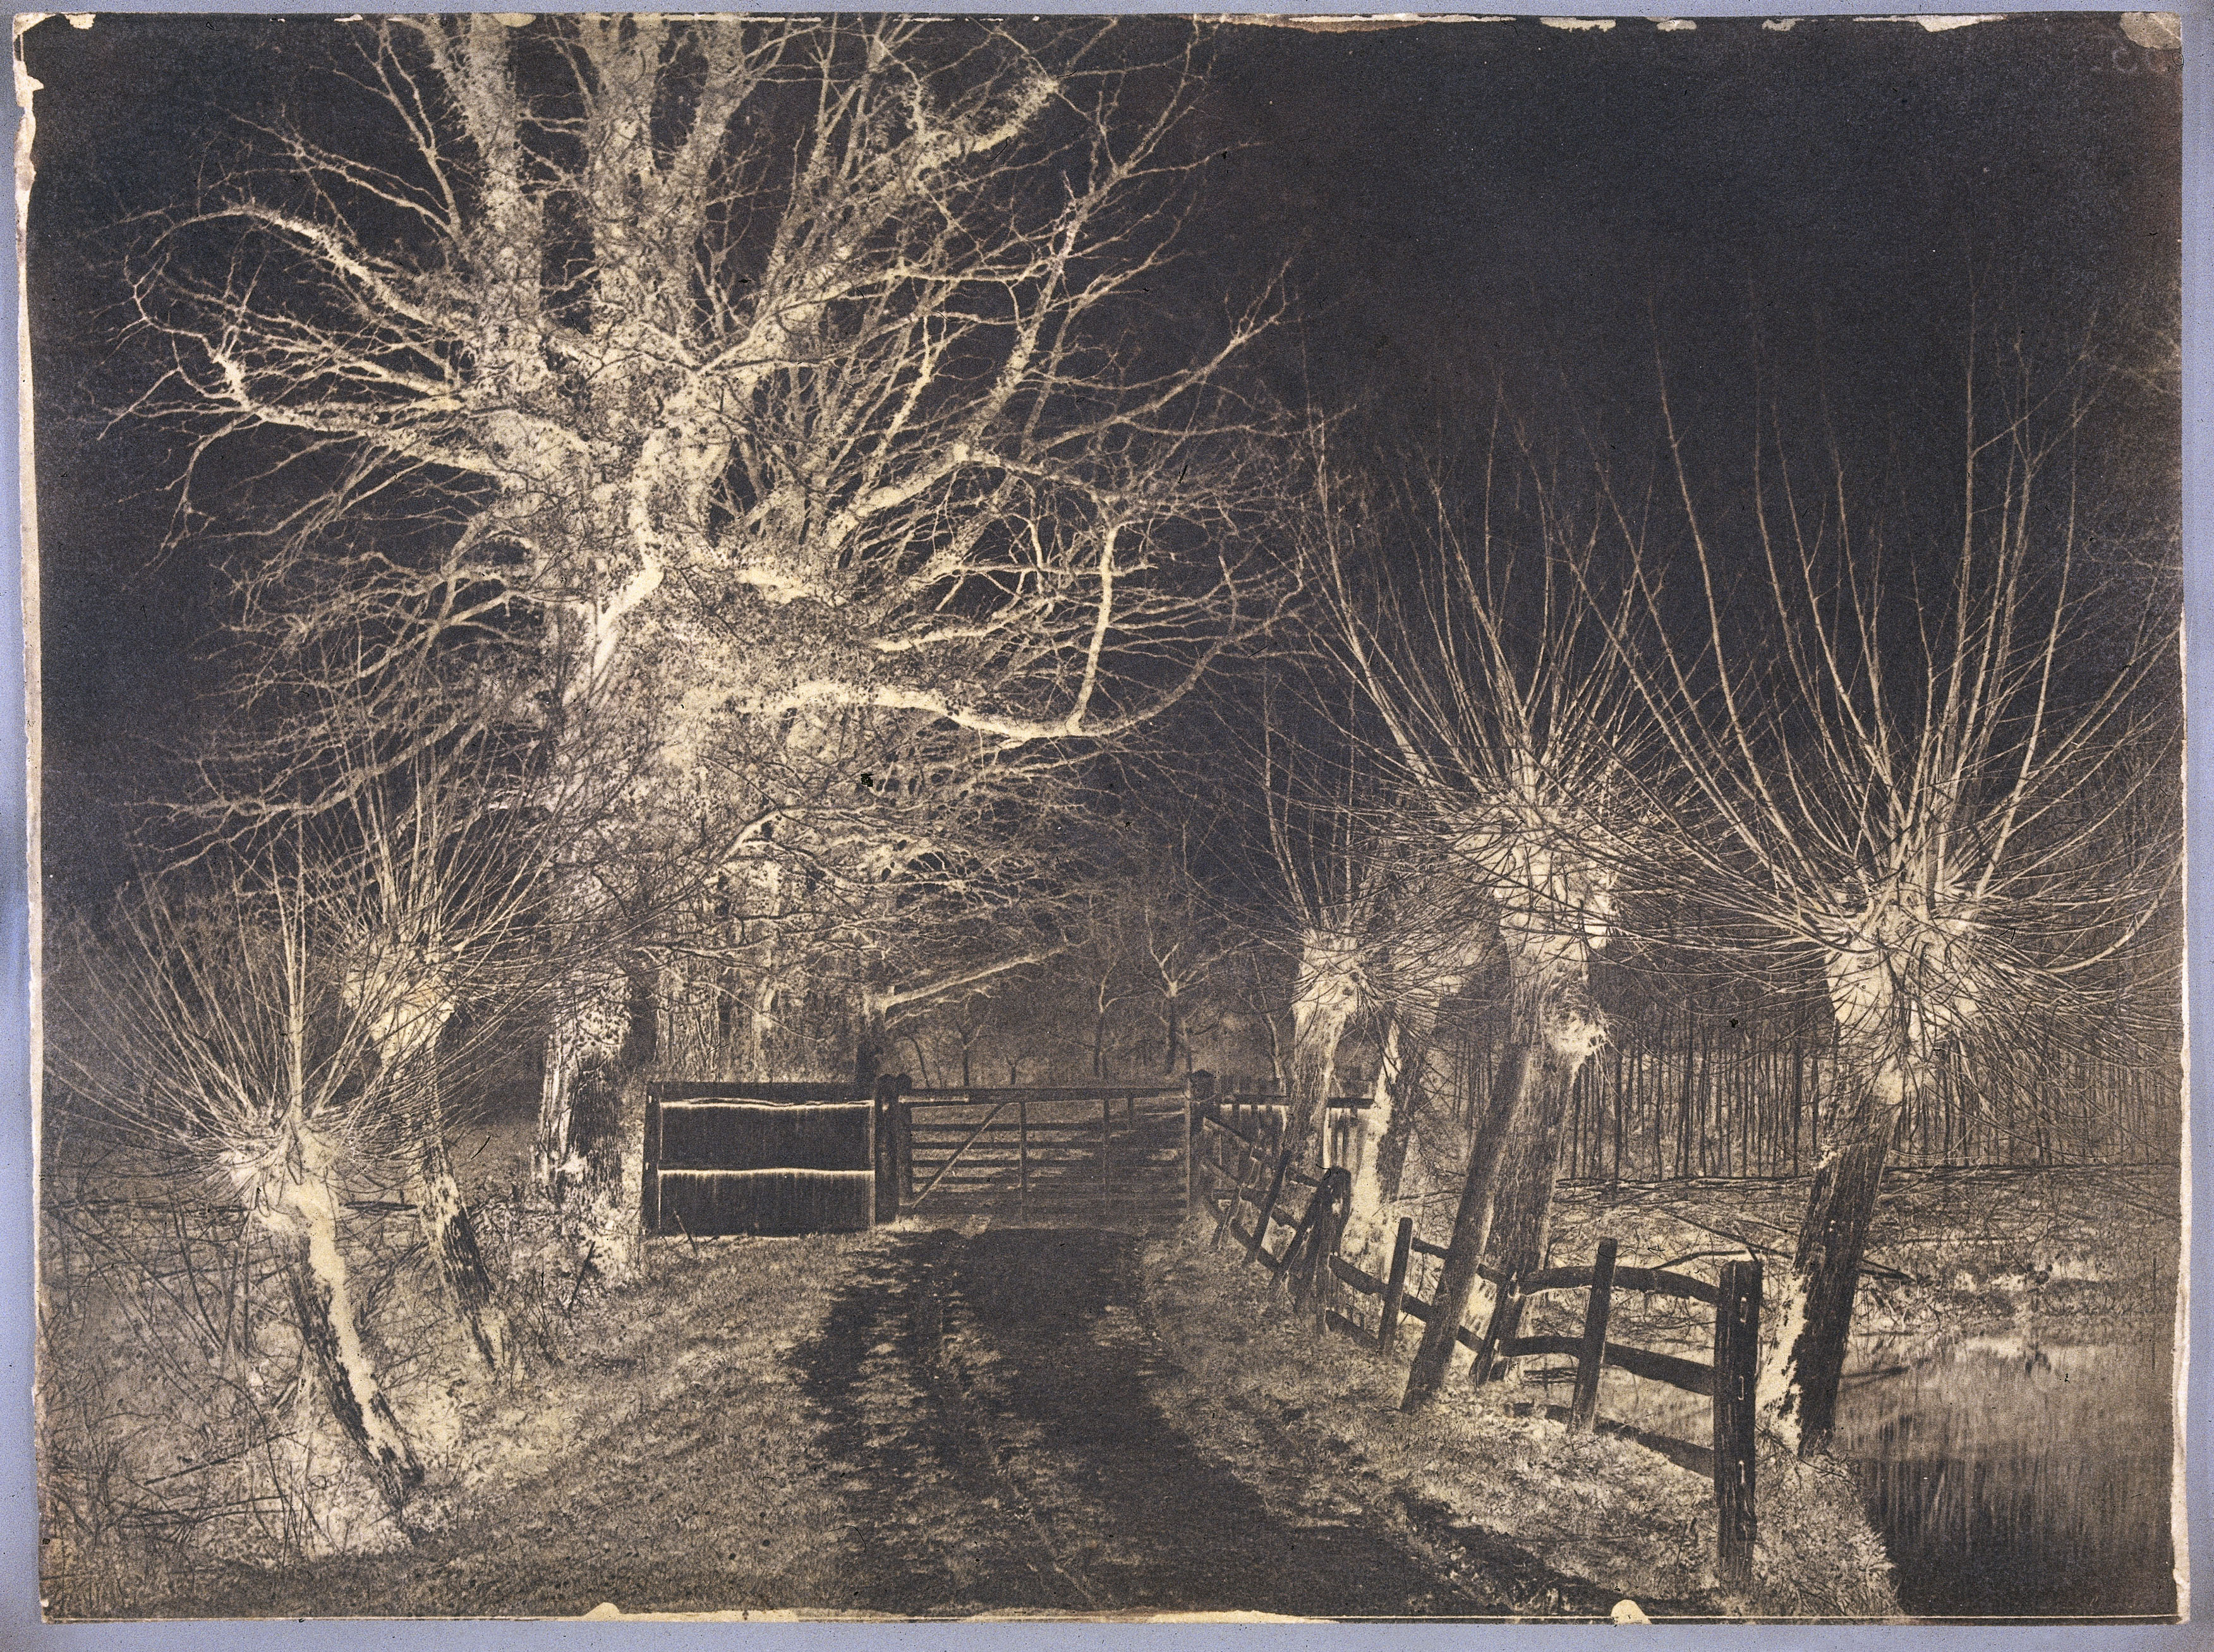 Bare trees, late 19th century.